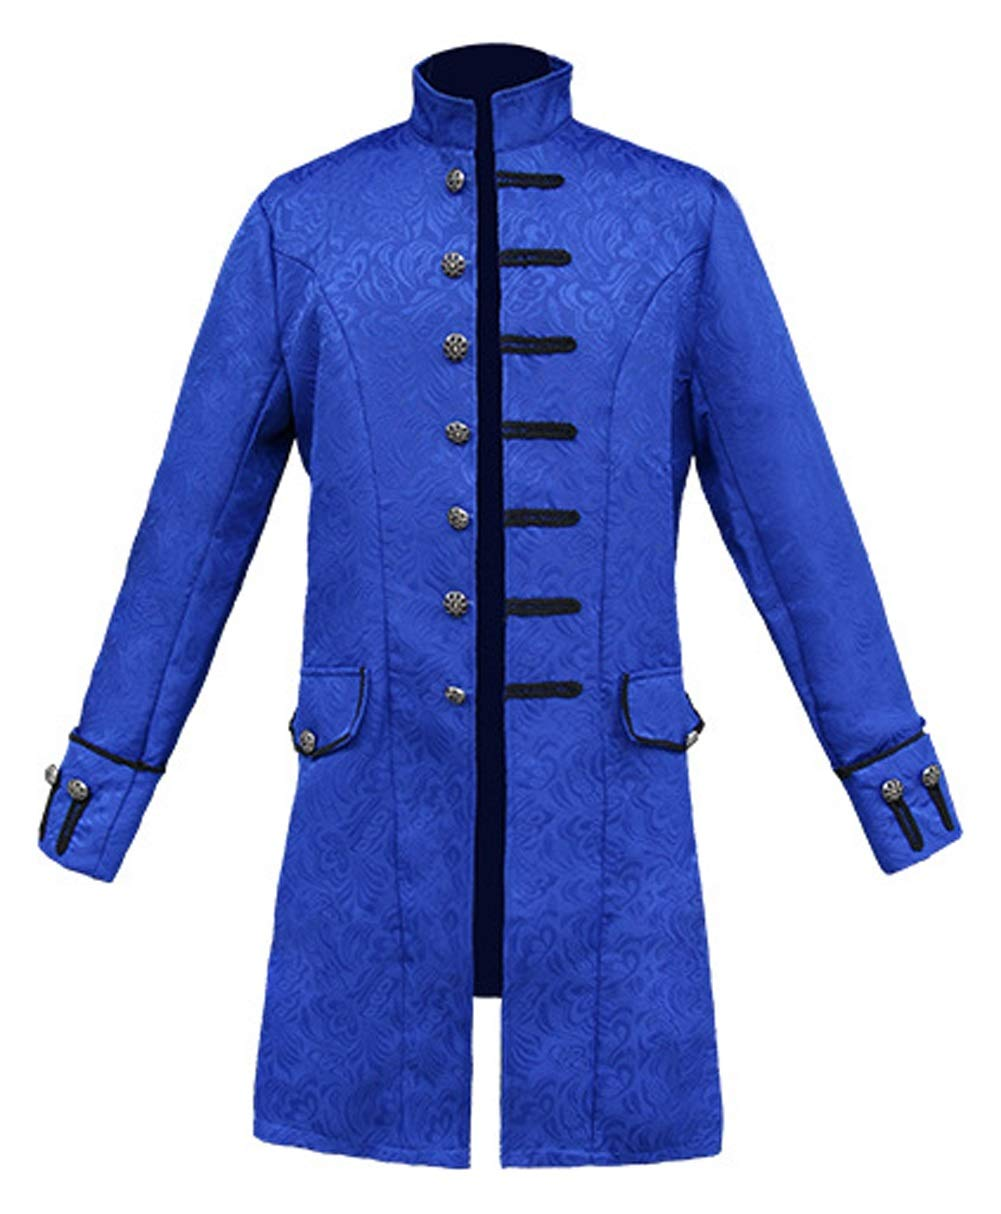 LETSQK Men's Steampunk Halloween Costume Stylish Vintage Goth Victorian Jackets Blue M